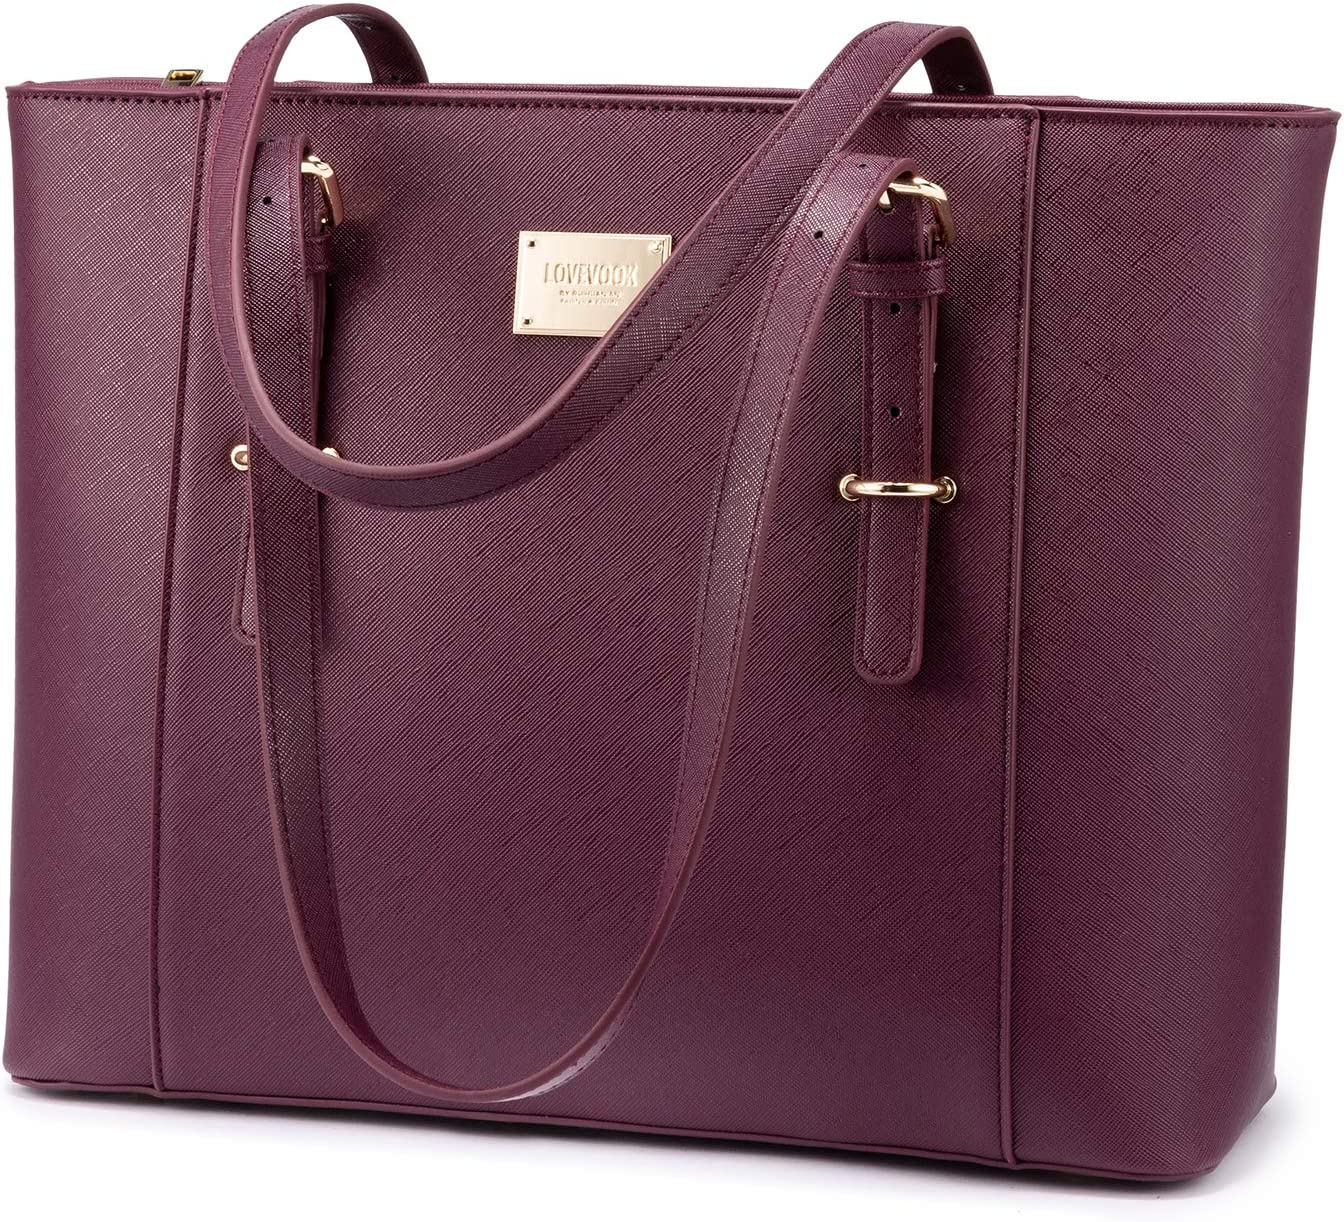 14-Inch Laptop Bag for Women, Professional Computer Bags - Laptop Purse with Padded Compartment - Fit Under Airplane Seat (Deep Plum)